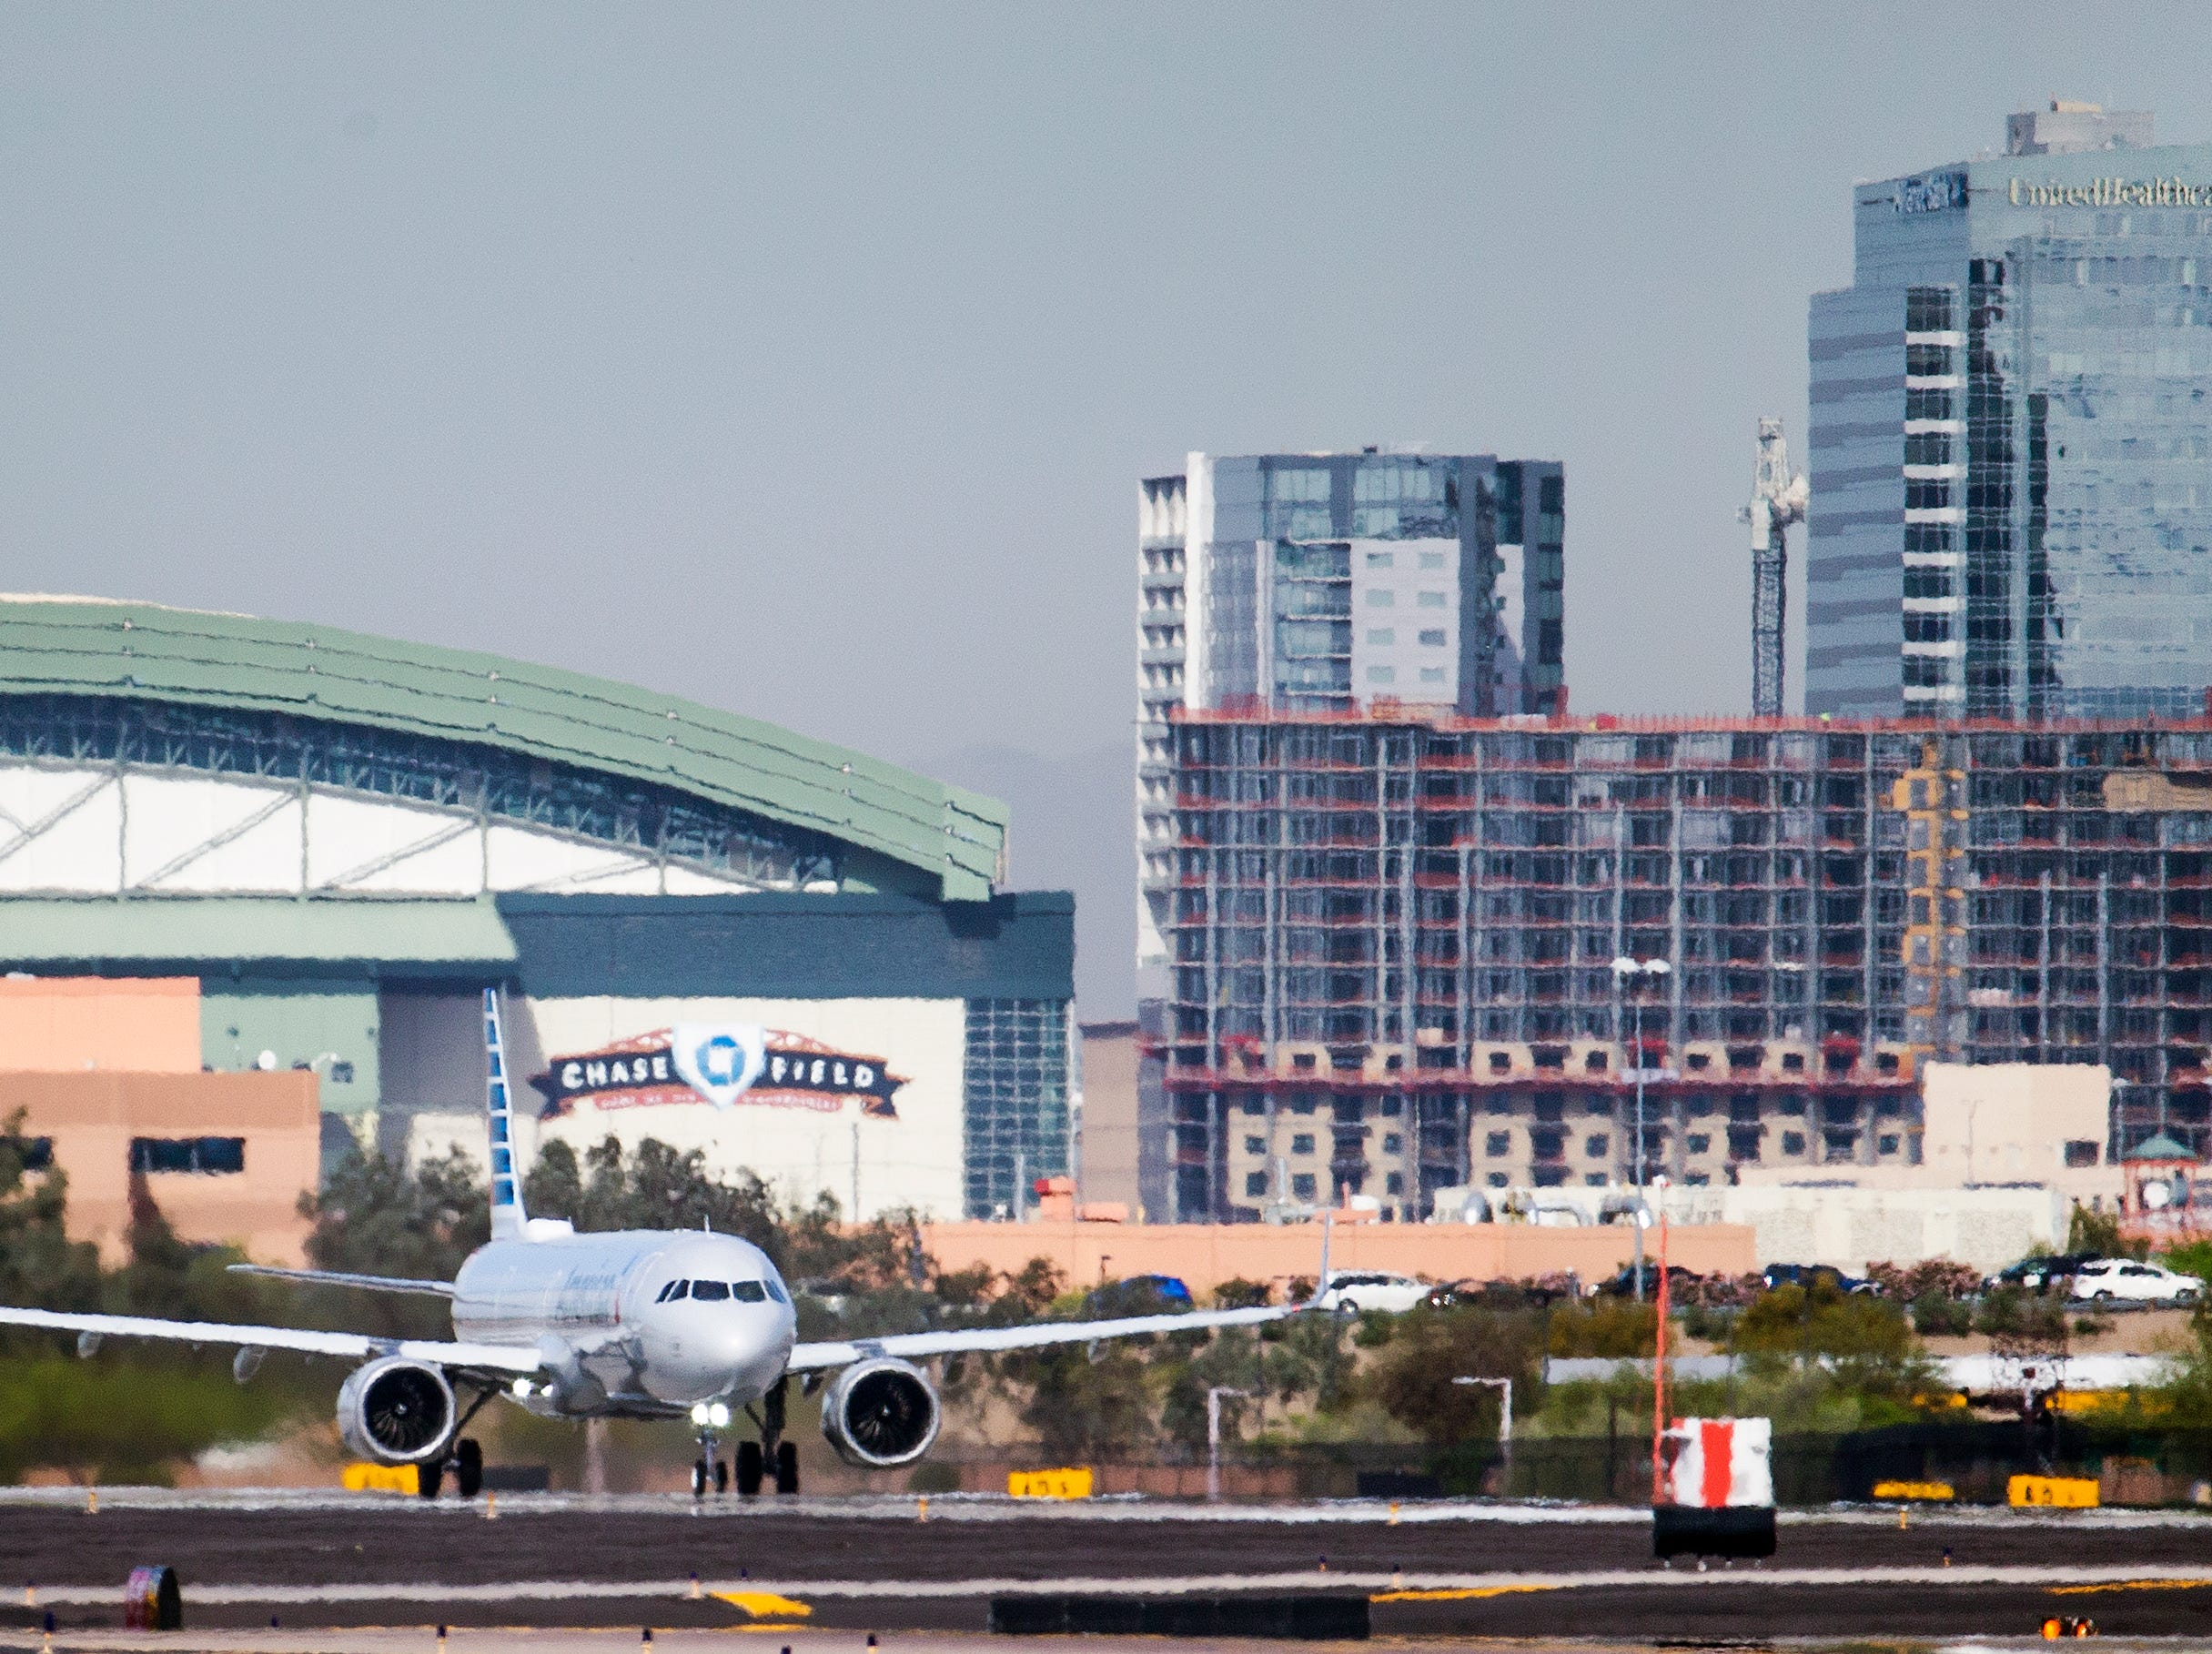 The first flight, from Phoenix Sky Harbor International Airport to Orlando, Florida, starts it's take off roll on April 2, 2019.